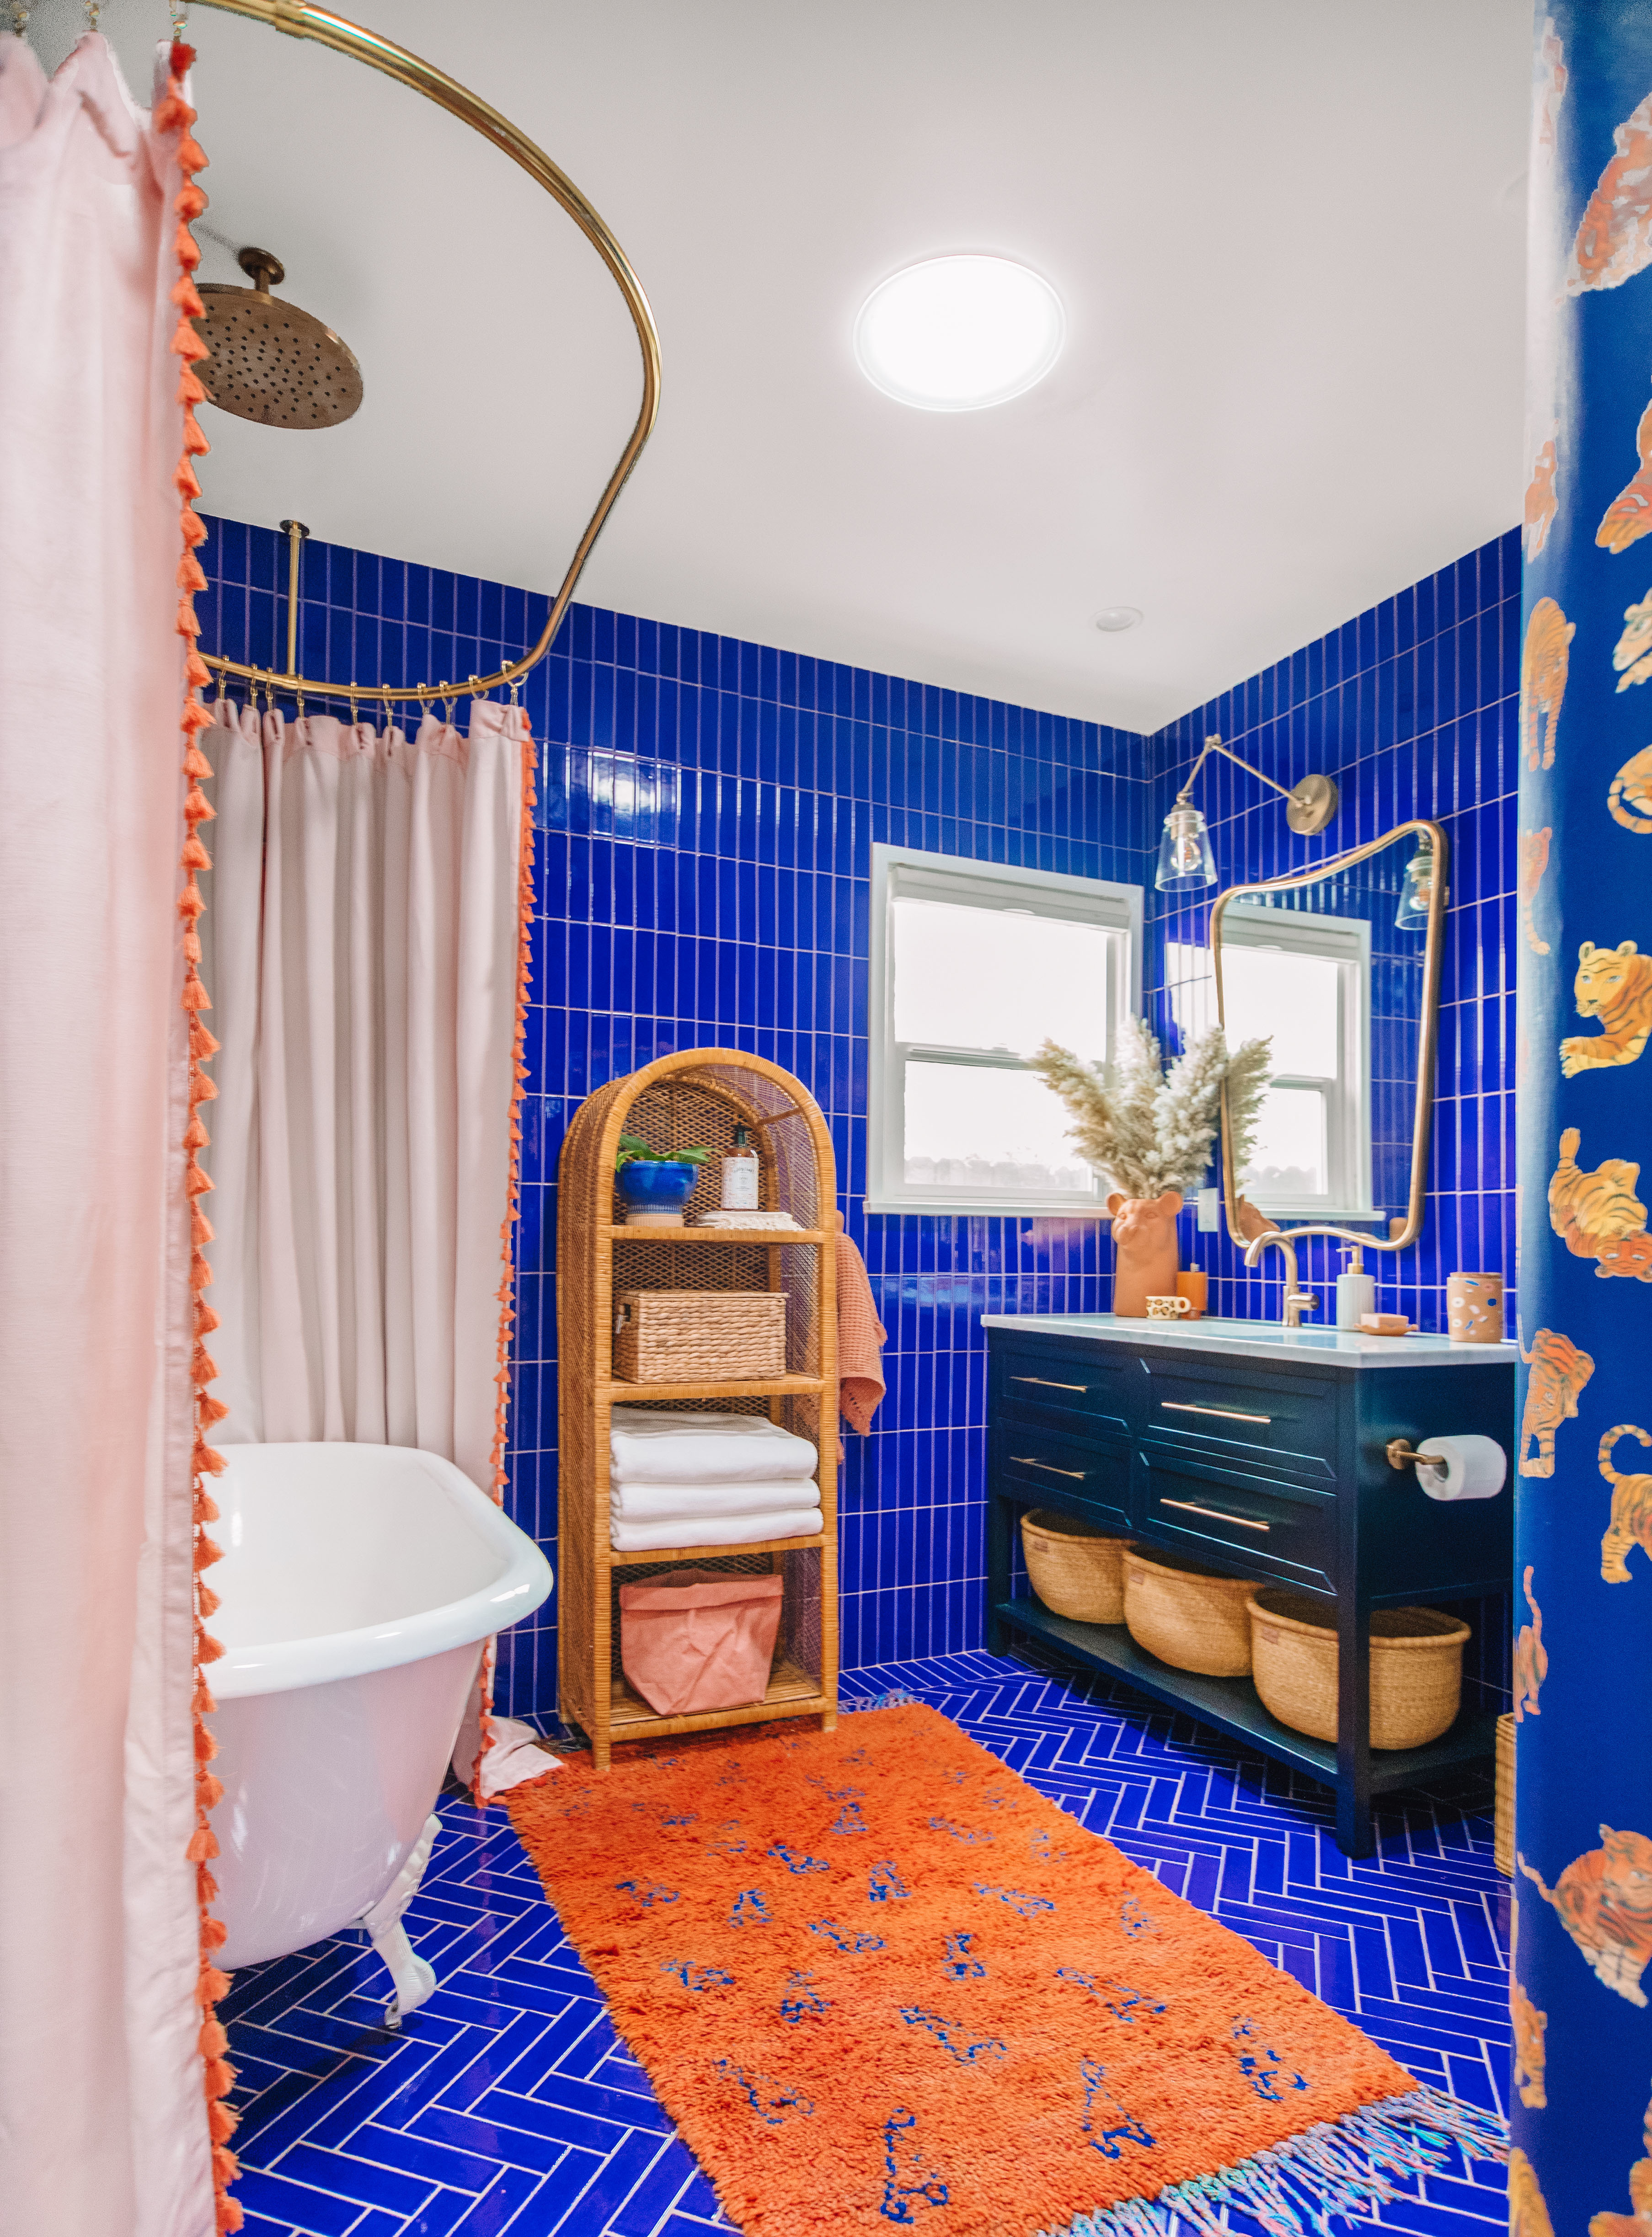 Bathroom with royal blue tile and terra cotta accents with claw foot bathtub